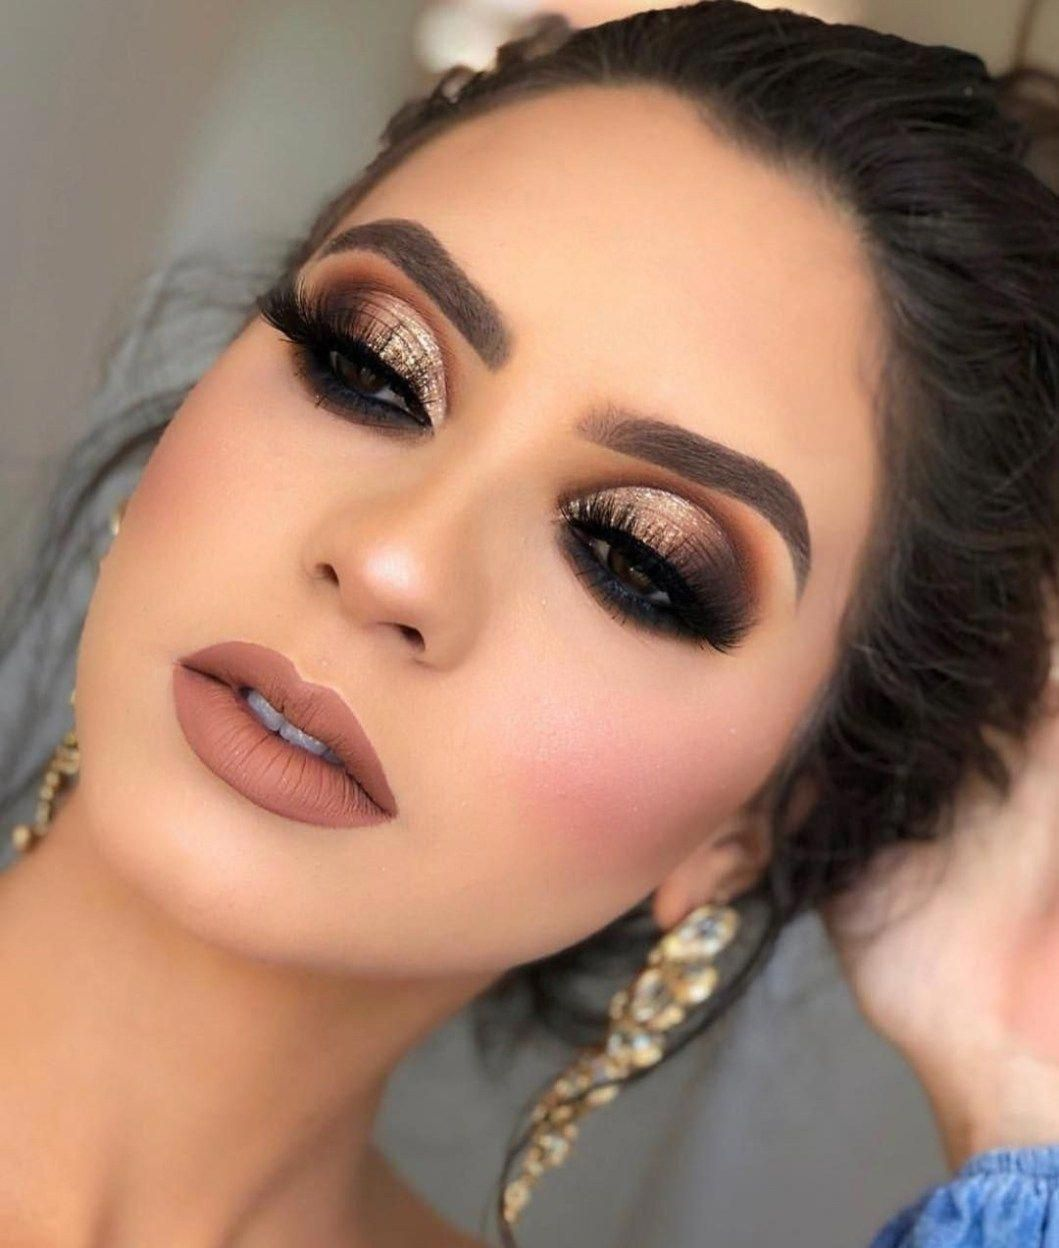 Beautiful Neutral Makeup Ideas For The Prom Party 16 Eyemakeup In 2020 Makeup For Green Eyes Neutral Makeup Eye Makeup